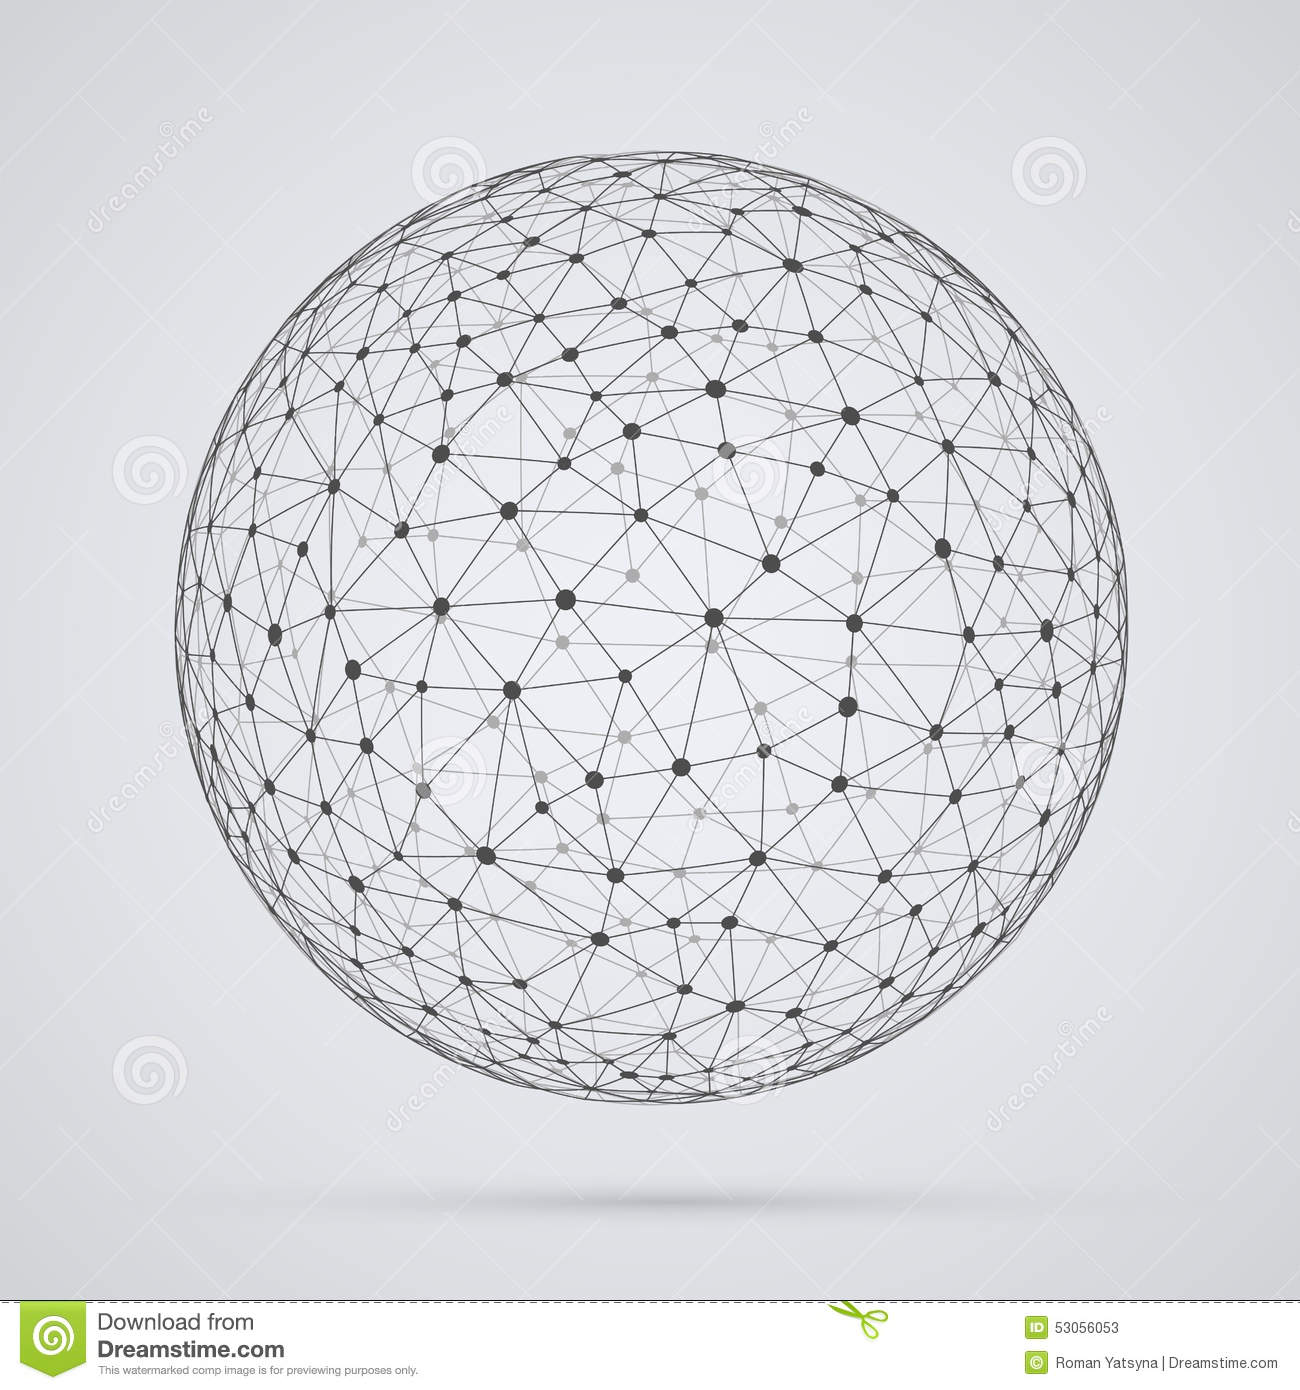 global network sphere abstract geometric spherical shape with